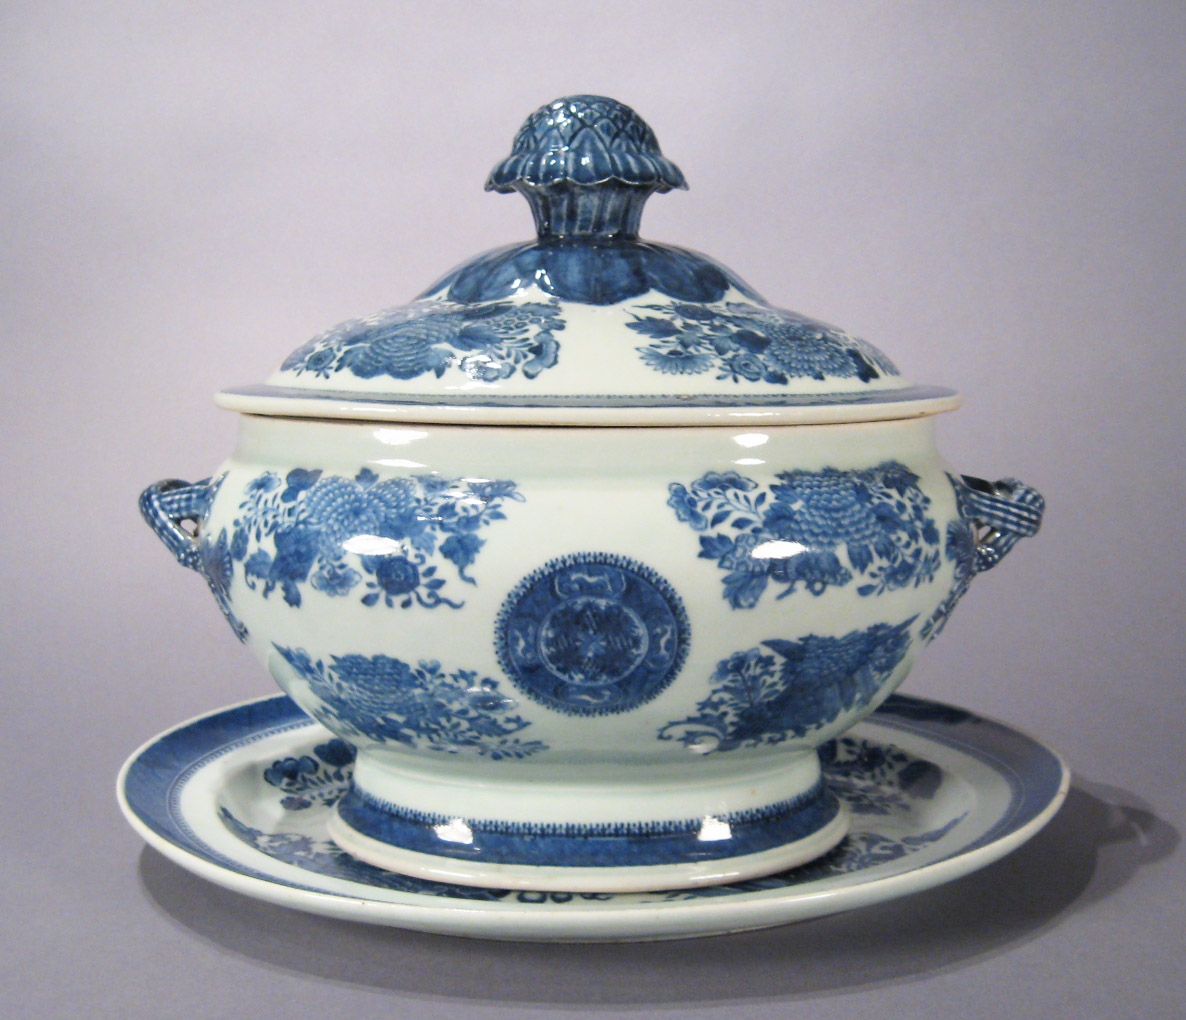 Chinese Export Porcelain Blue And White Soup Tureen C1810. Pictures Of Remodeled Kitchens. Kitchen Air. U Shaped Kitchen Layouts. Soup Kitchen Orange County. Kitchen Cabinets Unfinished. California Pizza Kitchen Short Pump. Above Kitchen Cabinet Ideas. Kitchens Of Distinction